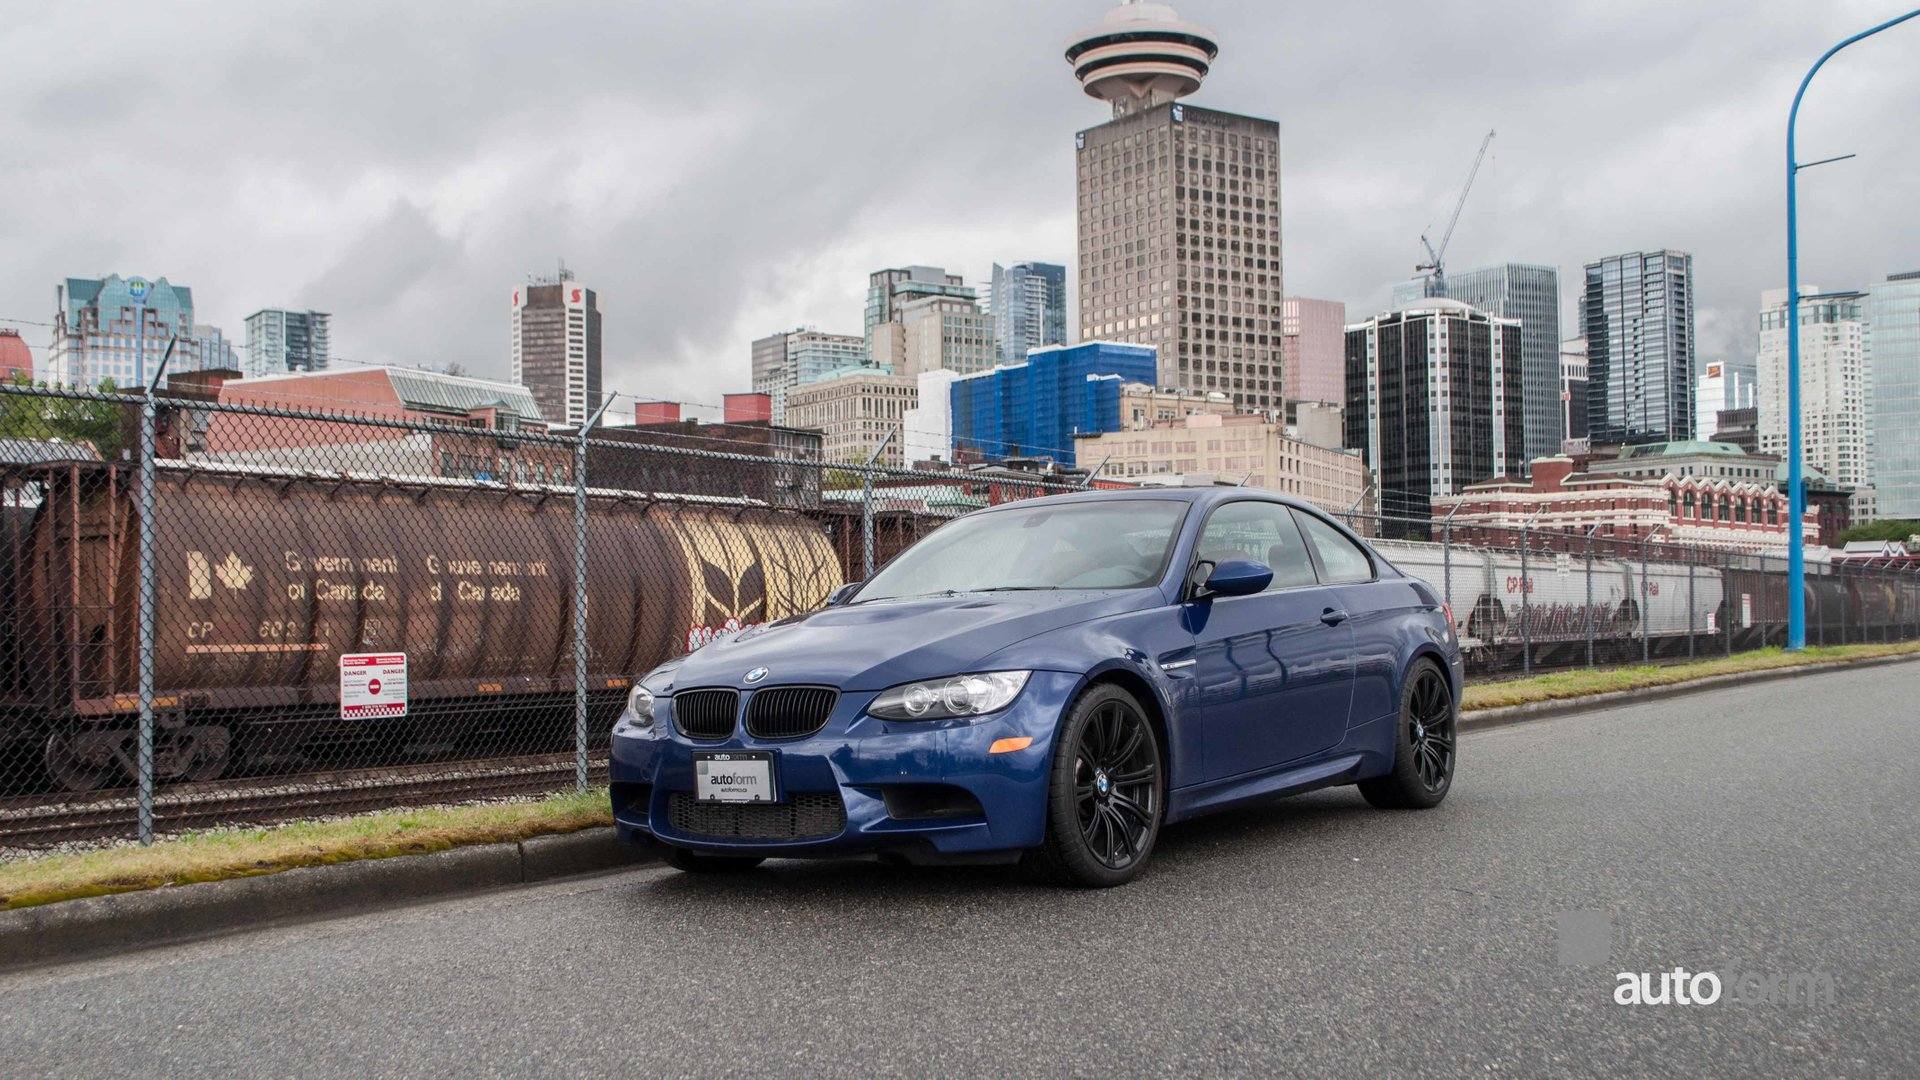 2013 bmw m3 coupe 6spd manual